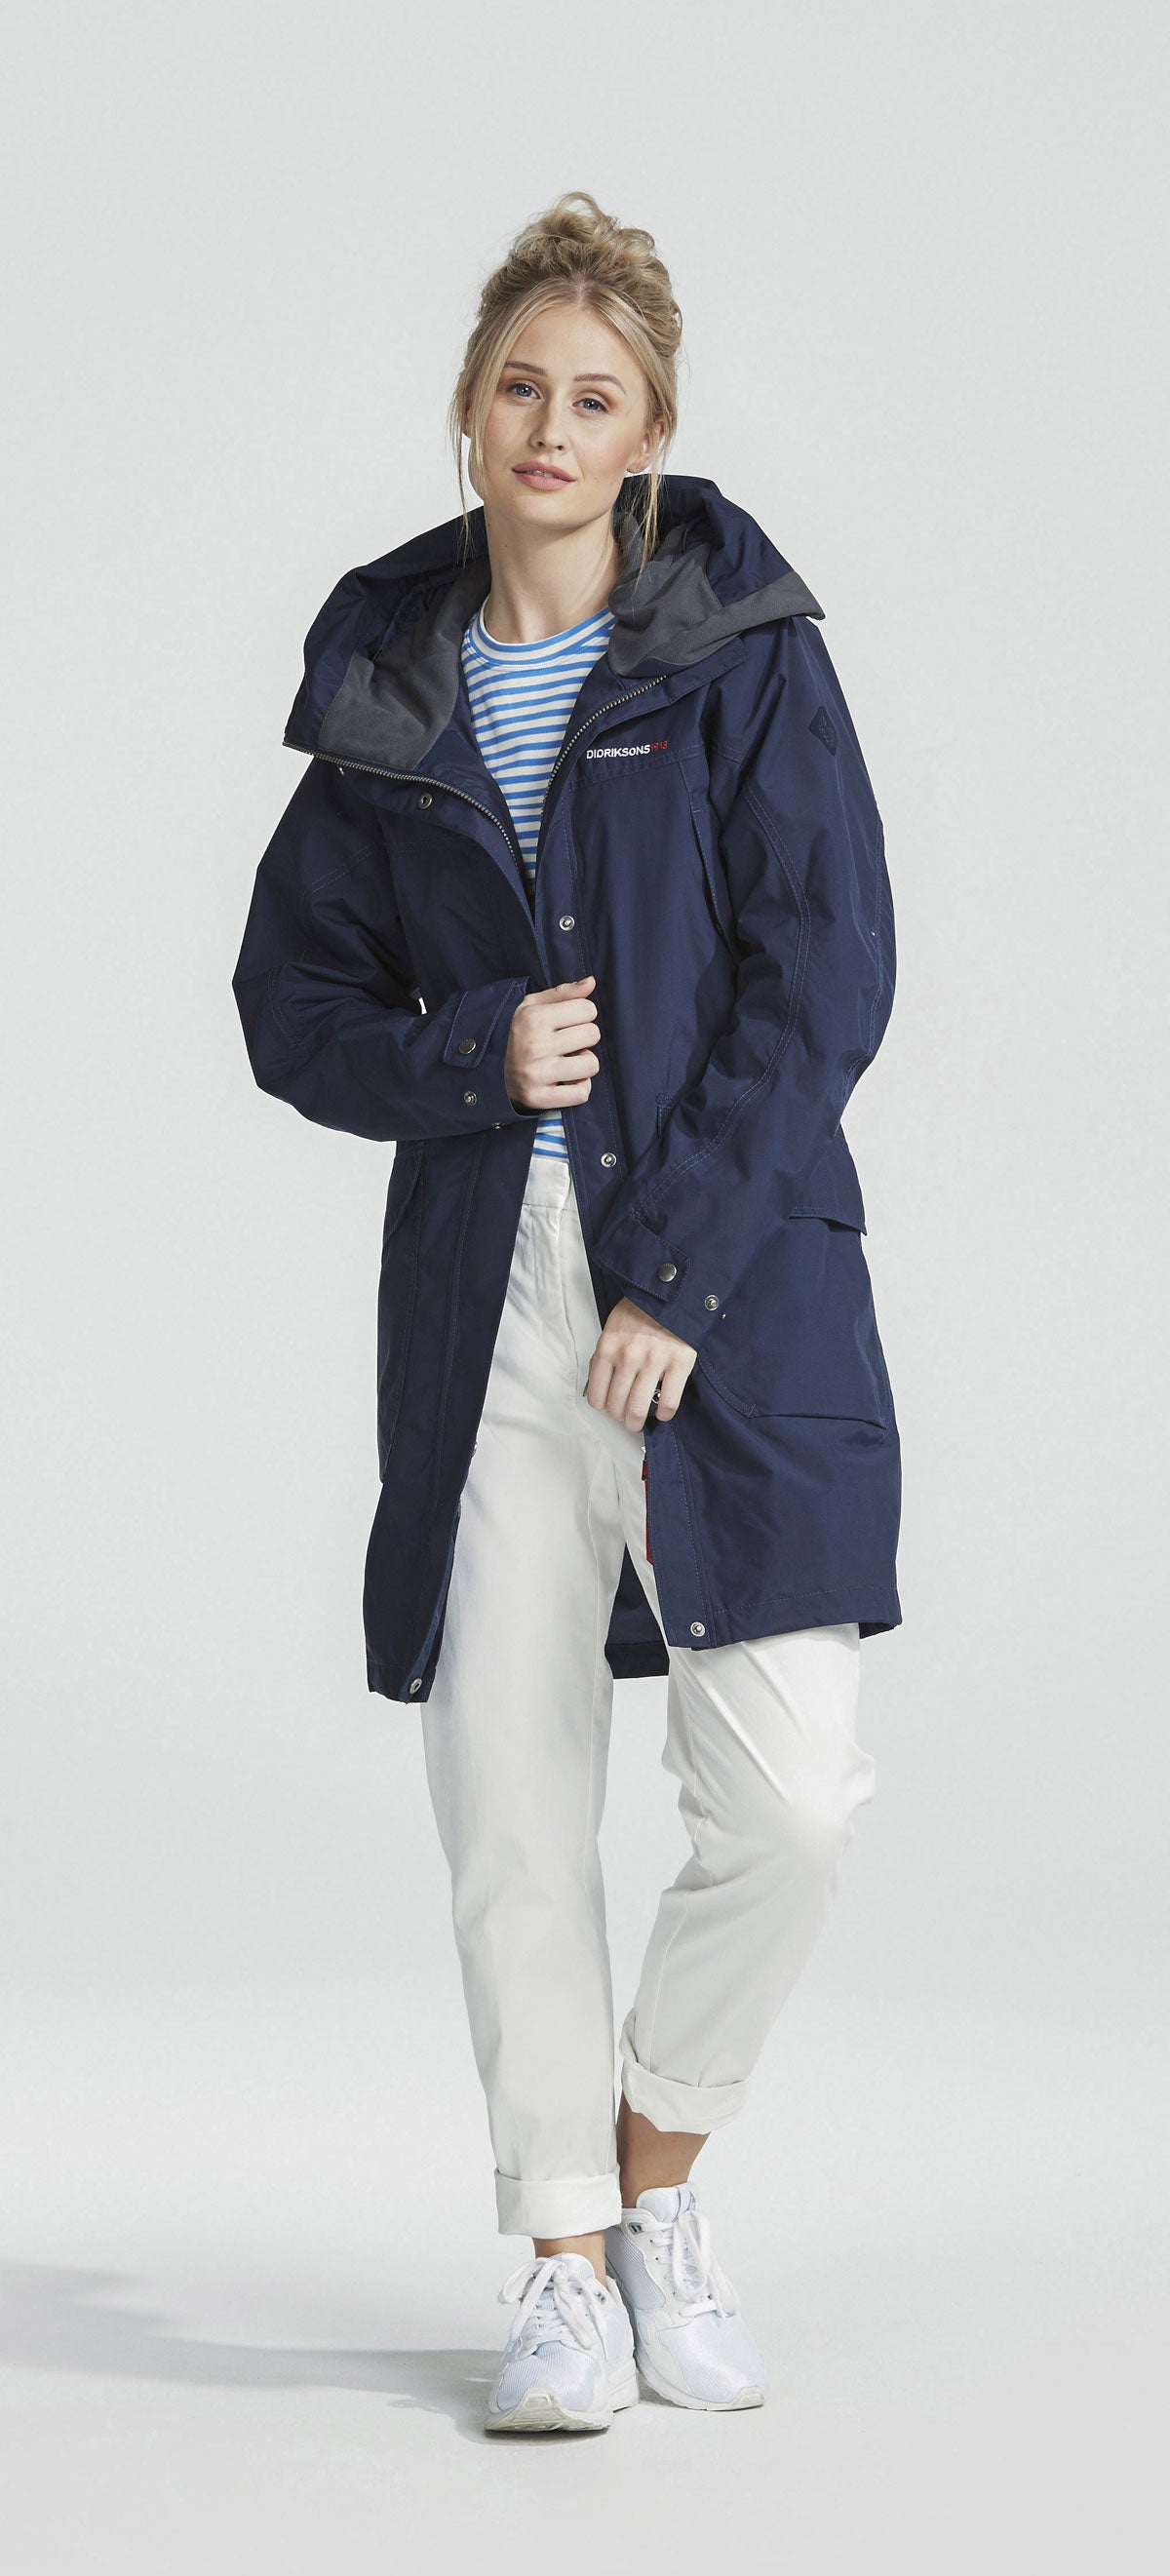 lady wearing navy Didriksons Ladies Thelma Waterproof parka coat